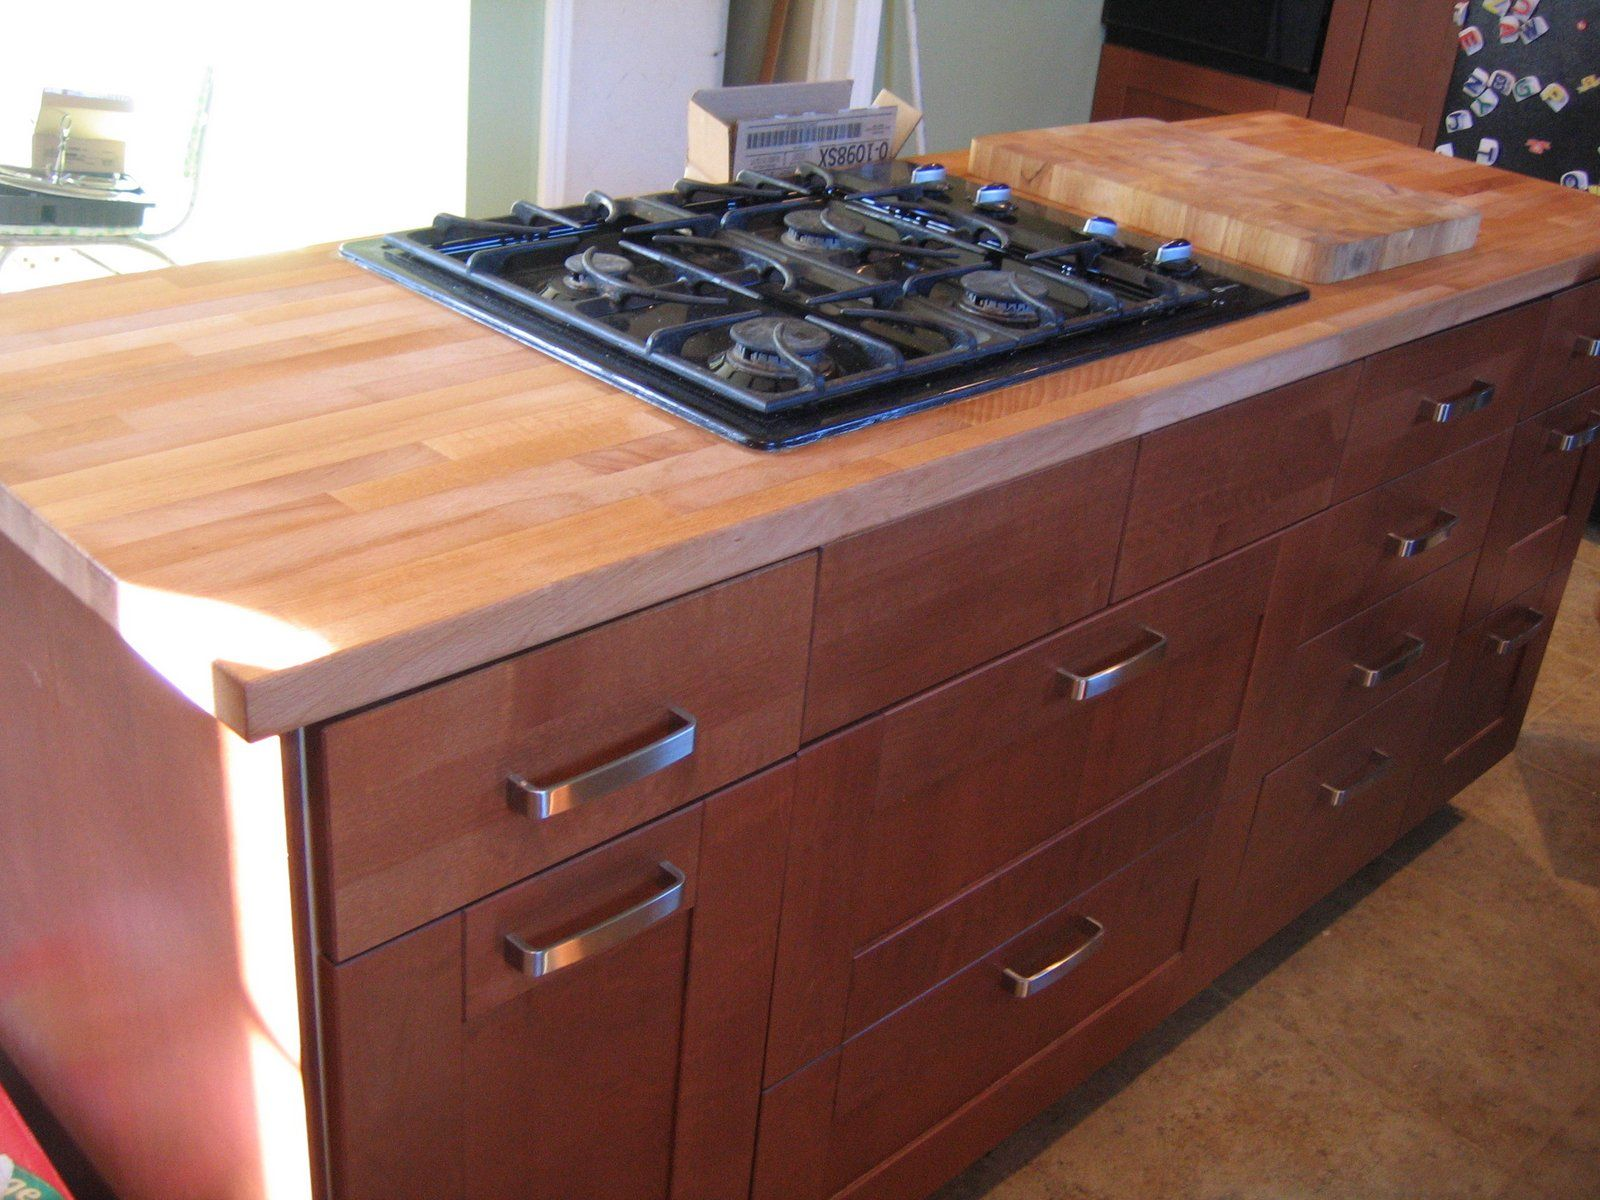 Furniture Diy Cherry Wood Butcher Block Countertops For Dark Cabinets With Drawer And Stainless Steel